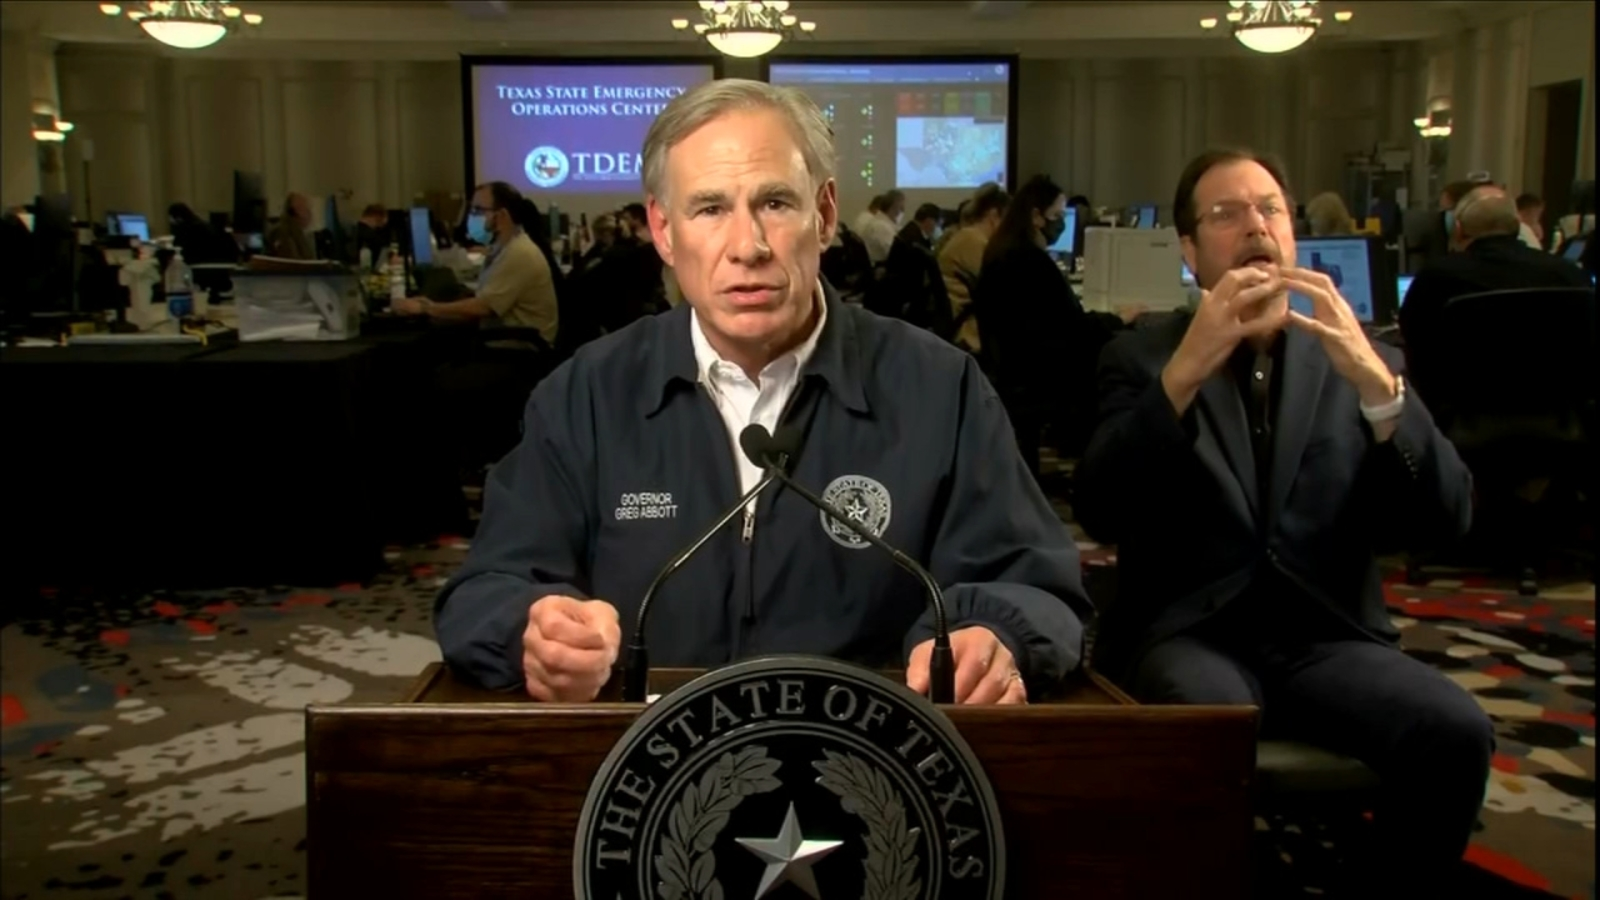 Texas power grid: Gov. Greg Abbott delivers statewide address on power outages